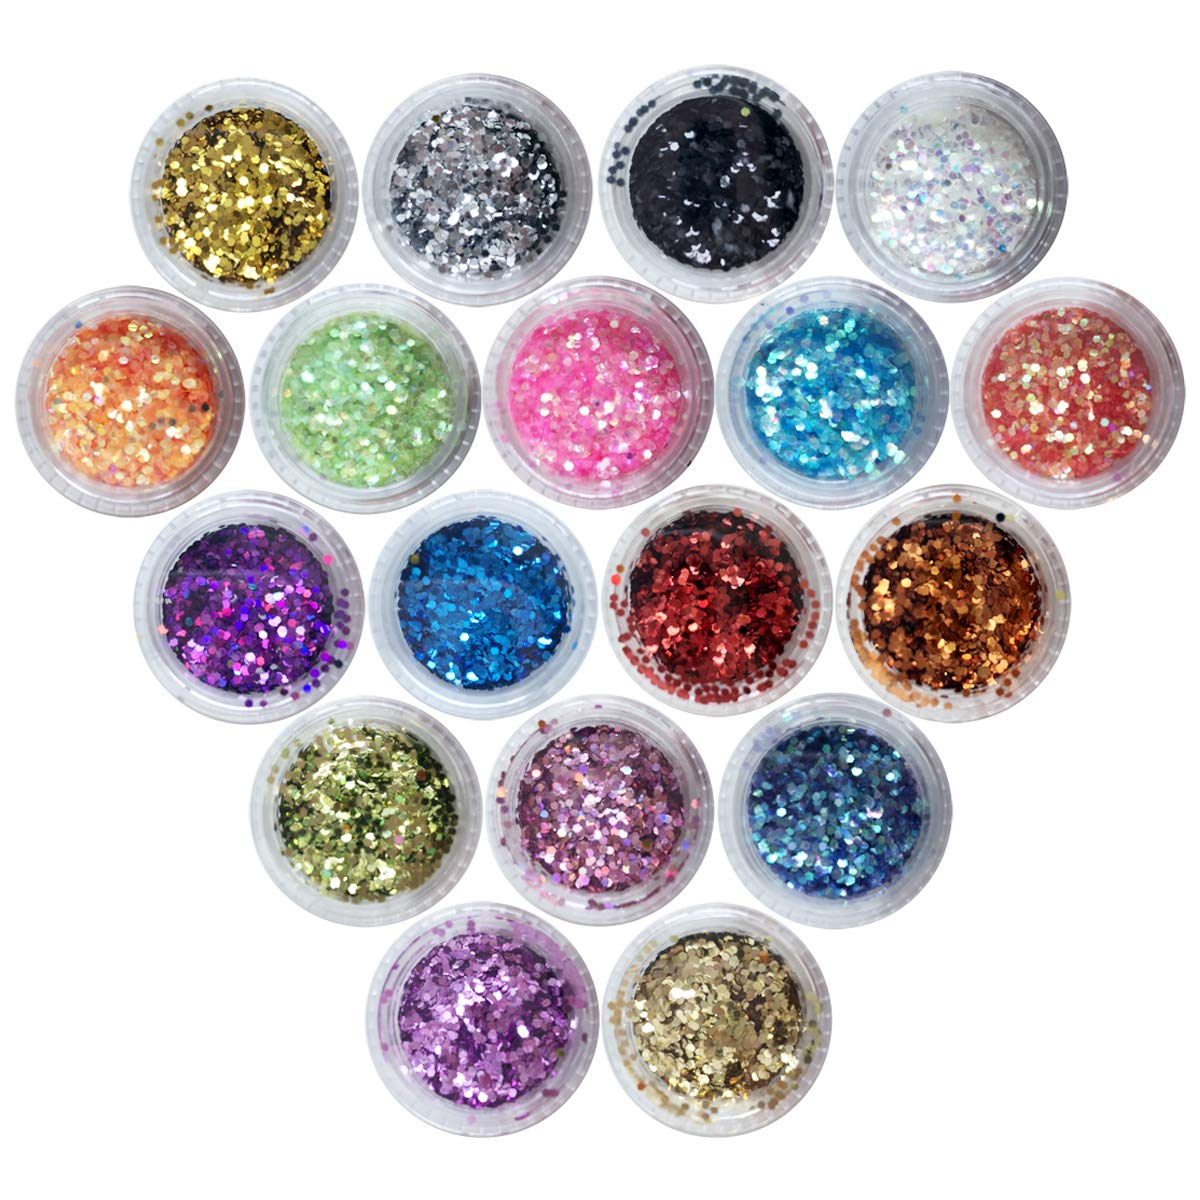 Nail Art Flake 12 Boxes Nail Glitters Circle Confetti Glitter Chunky Glitters for Hair Face and Eye Make Up Foil Flakes for Slime (12 Colors, Circle-Mix) Novelty Bank